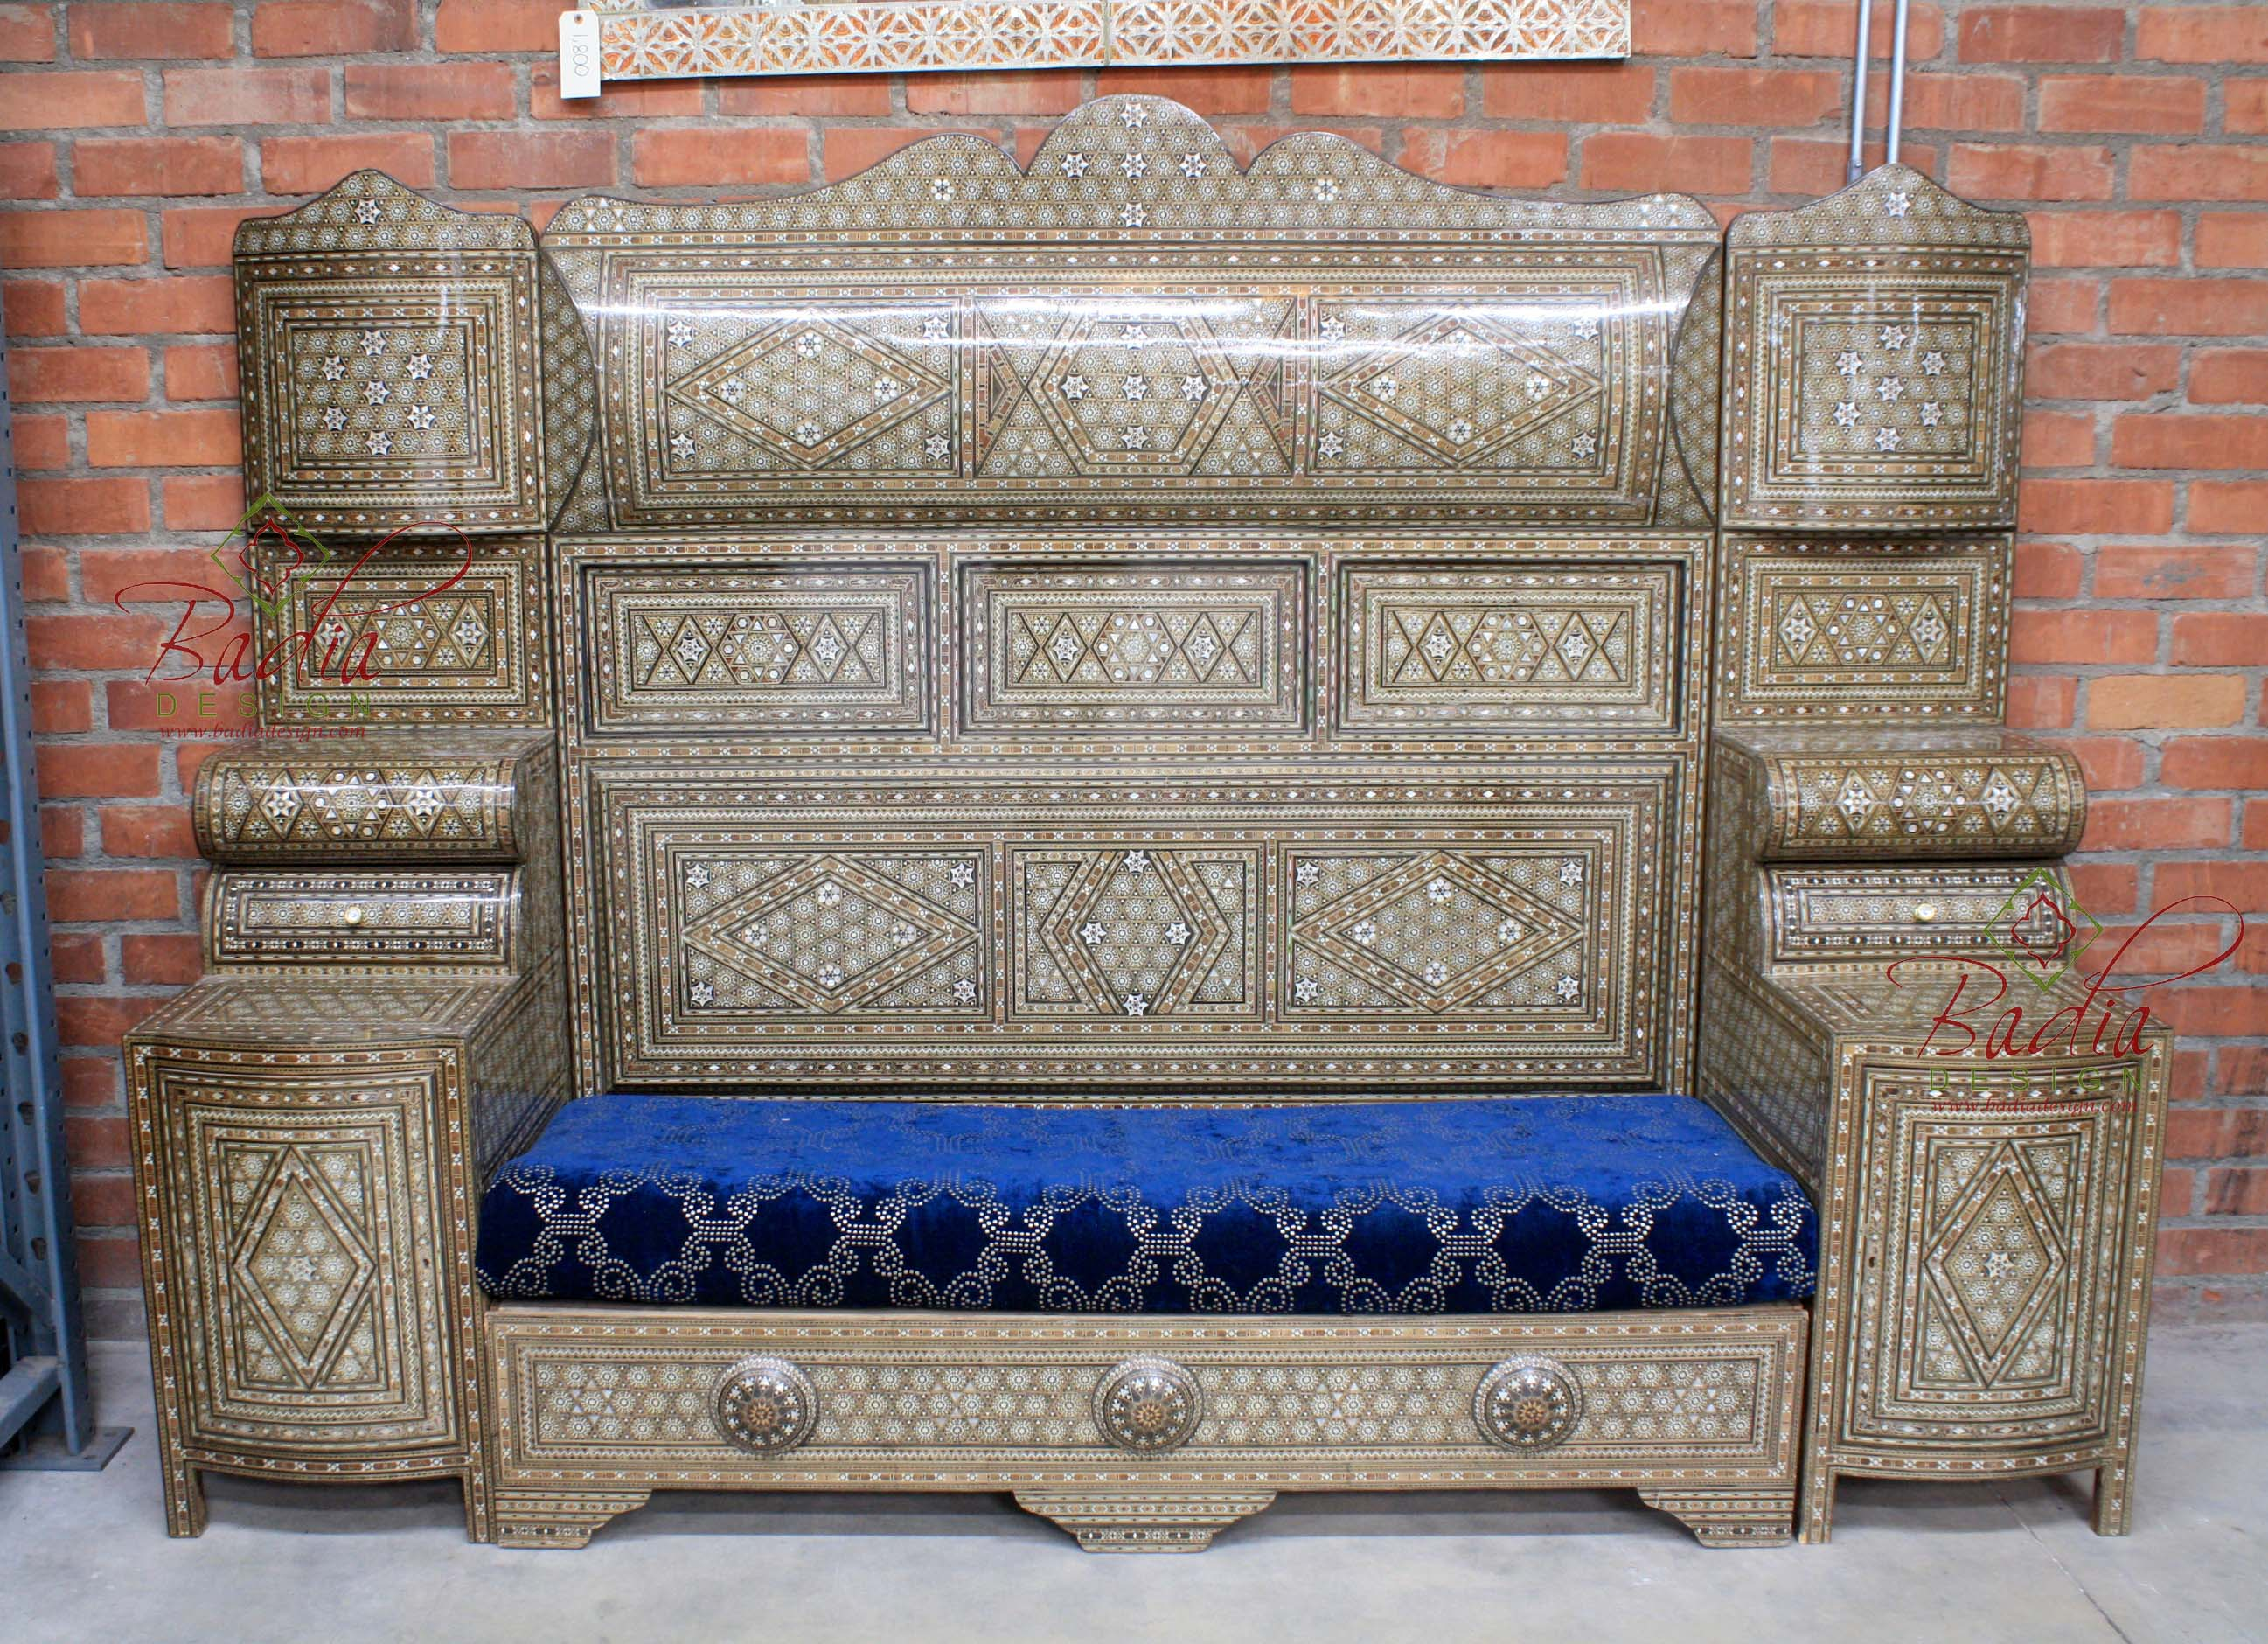 upscale-syrian-furniture-los-angeles-1.jpg